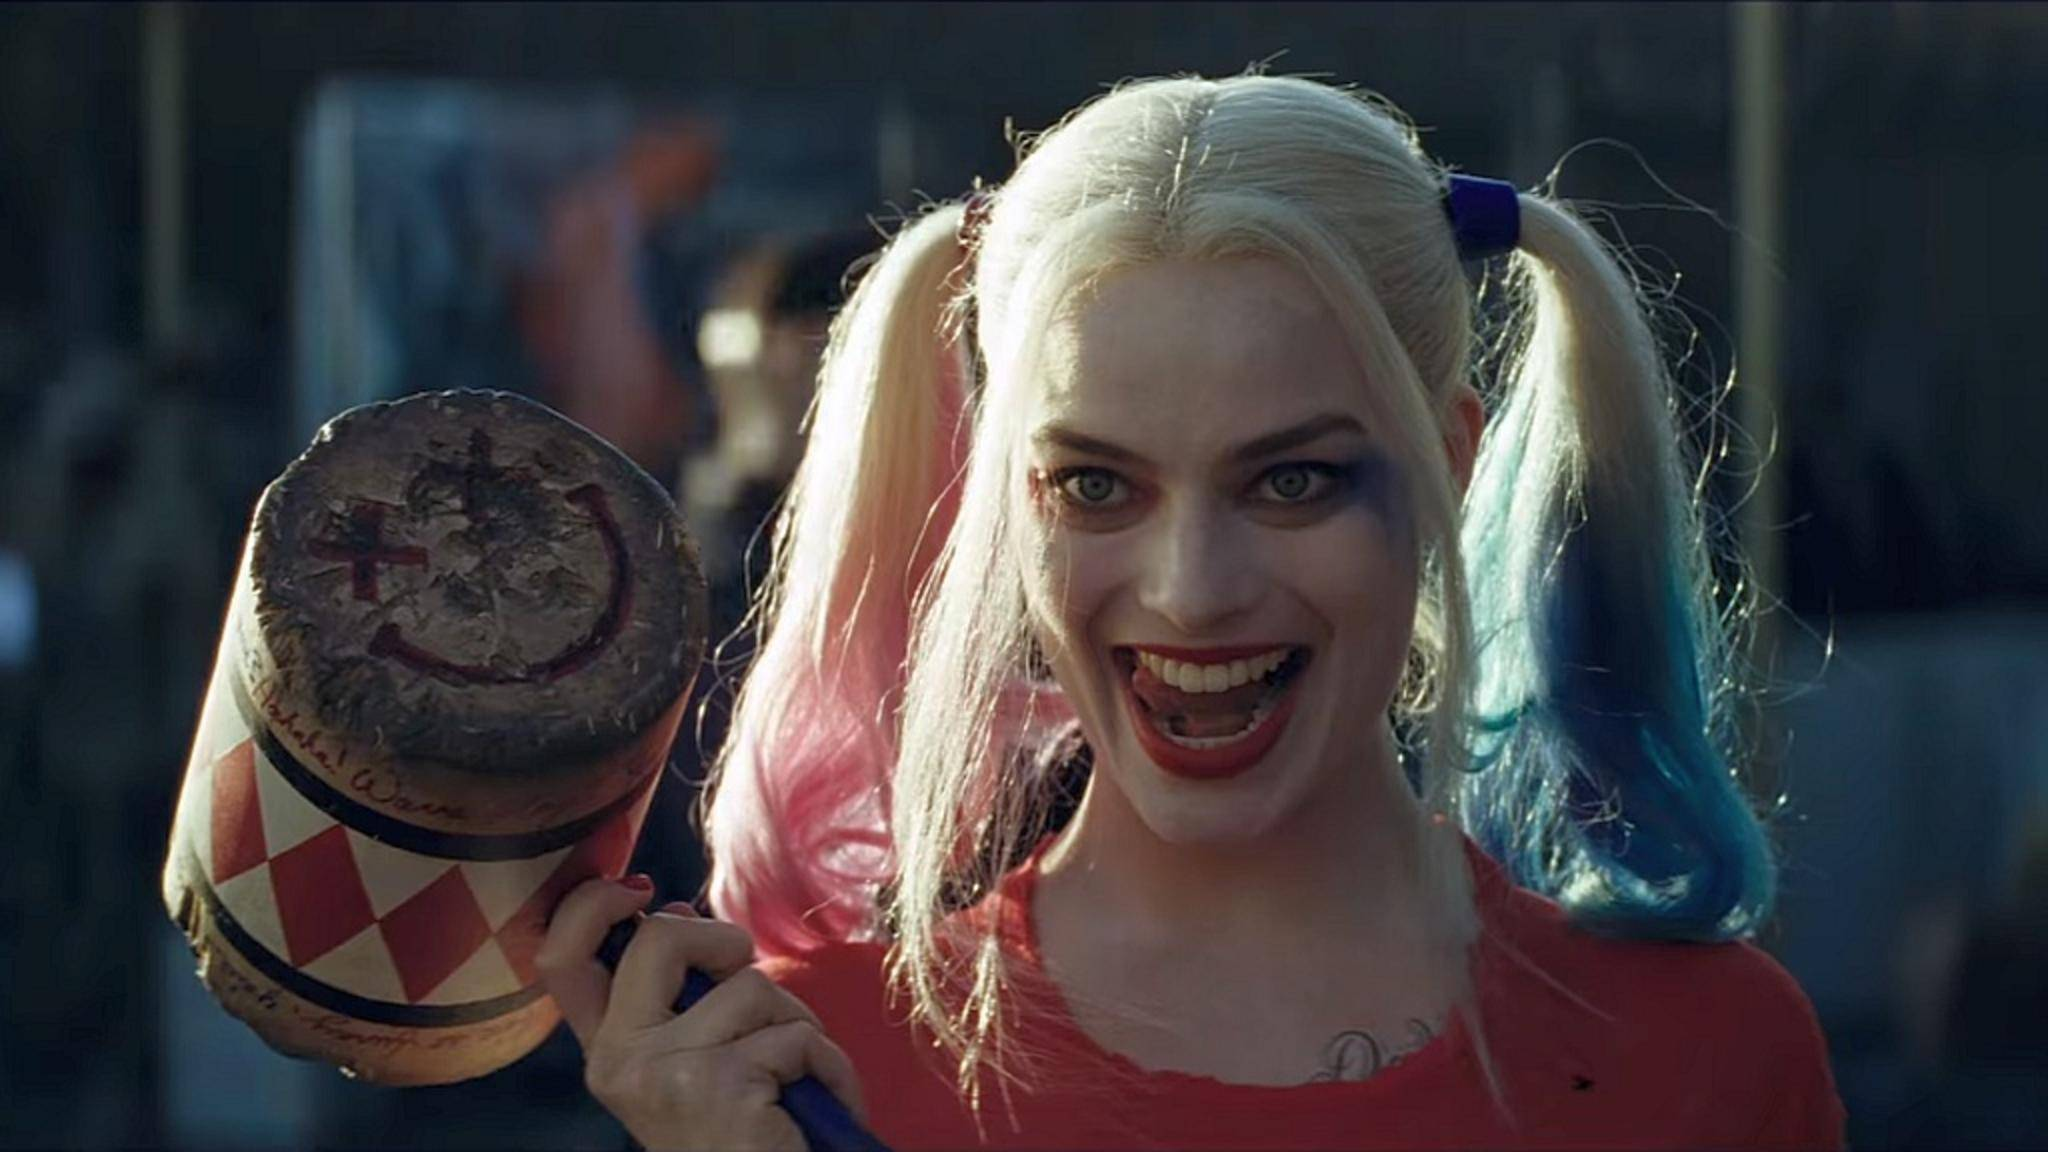 suicide-squad-harley-quinn-margot-robbie-youtube-warnerbrospictures